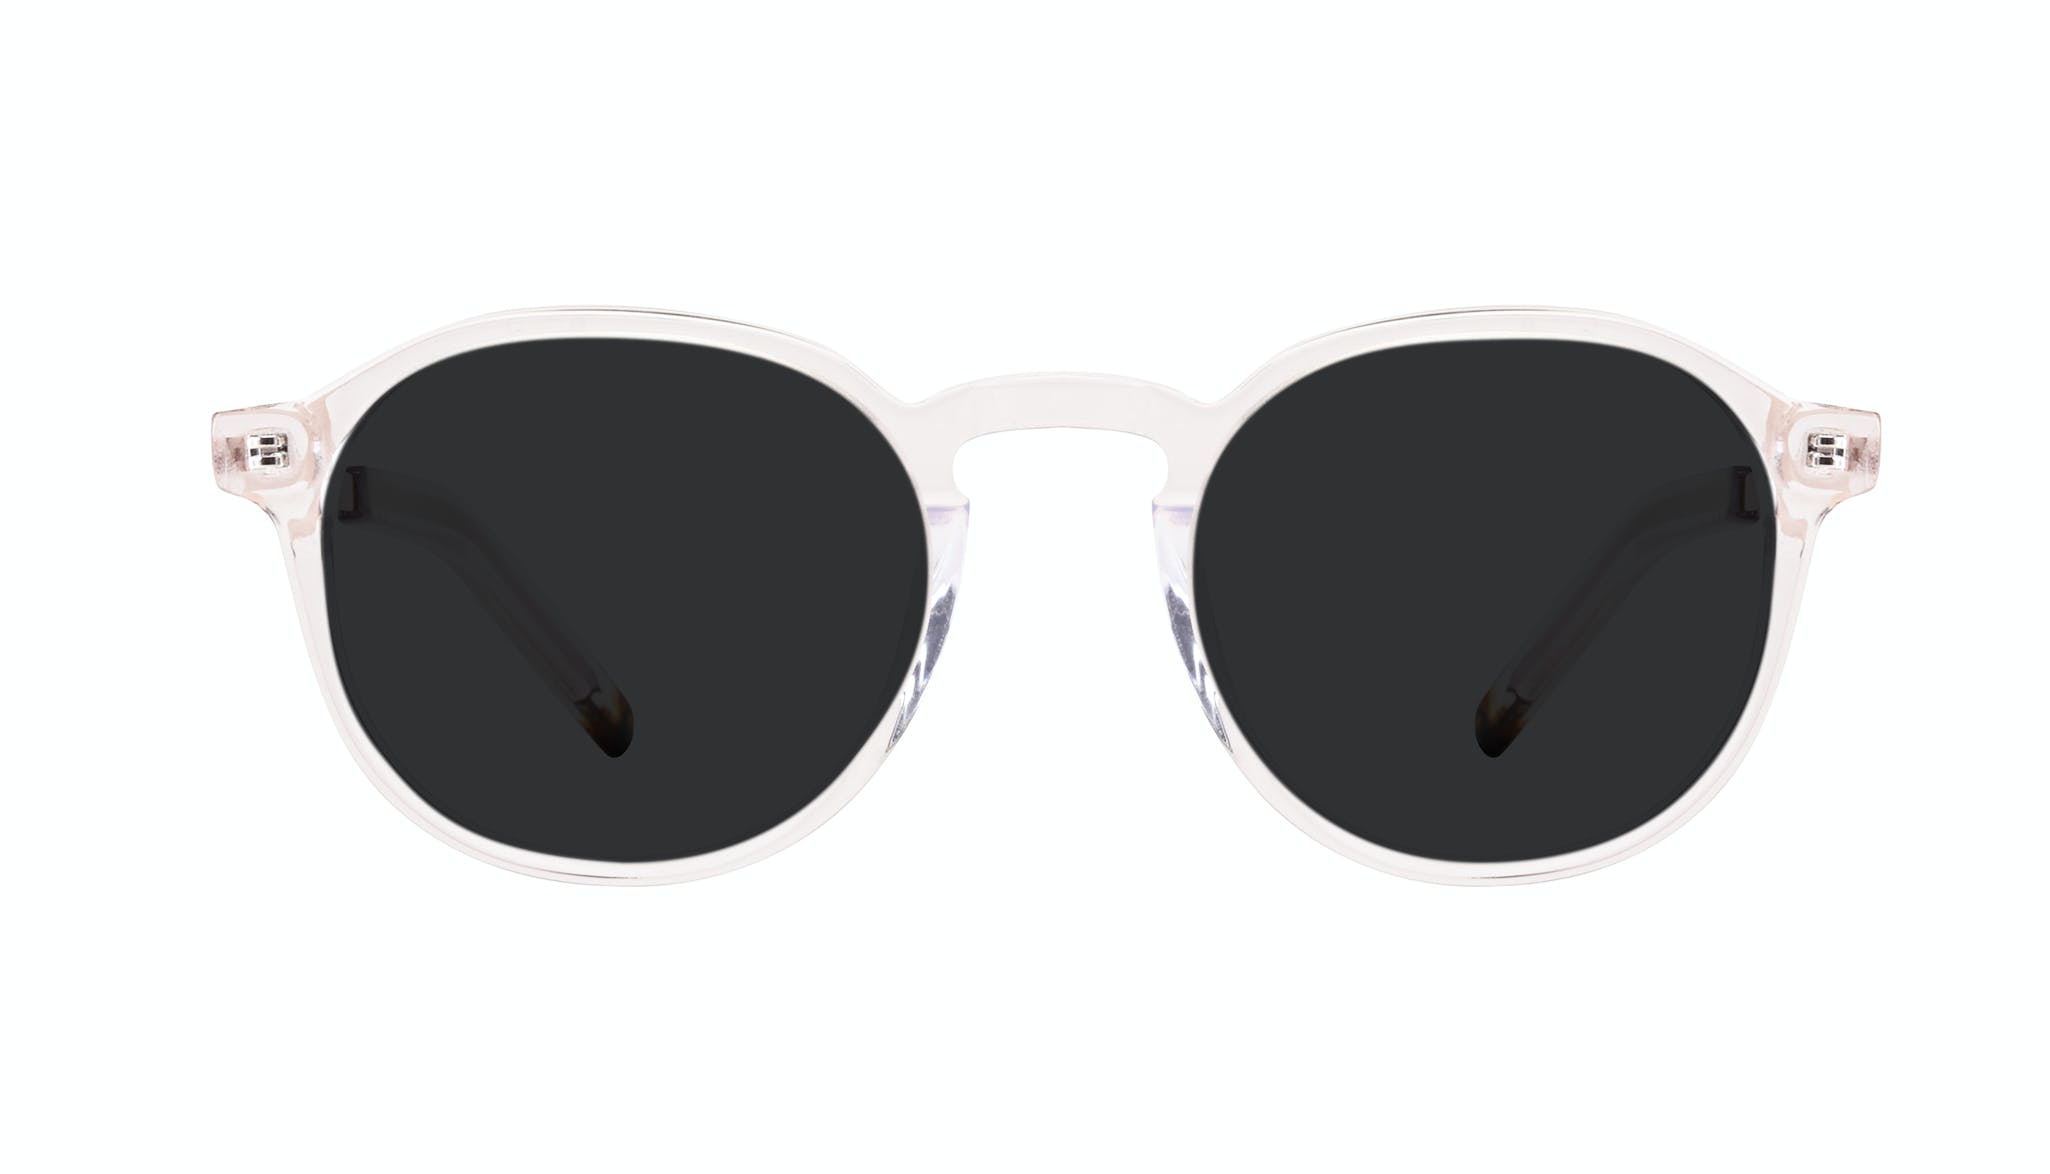 Affordable Fashion Glasses Round Sunglasses Men Prime XL Clear Front